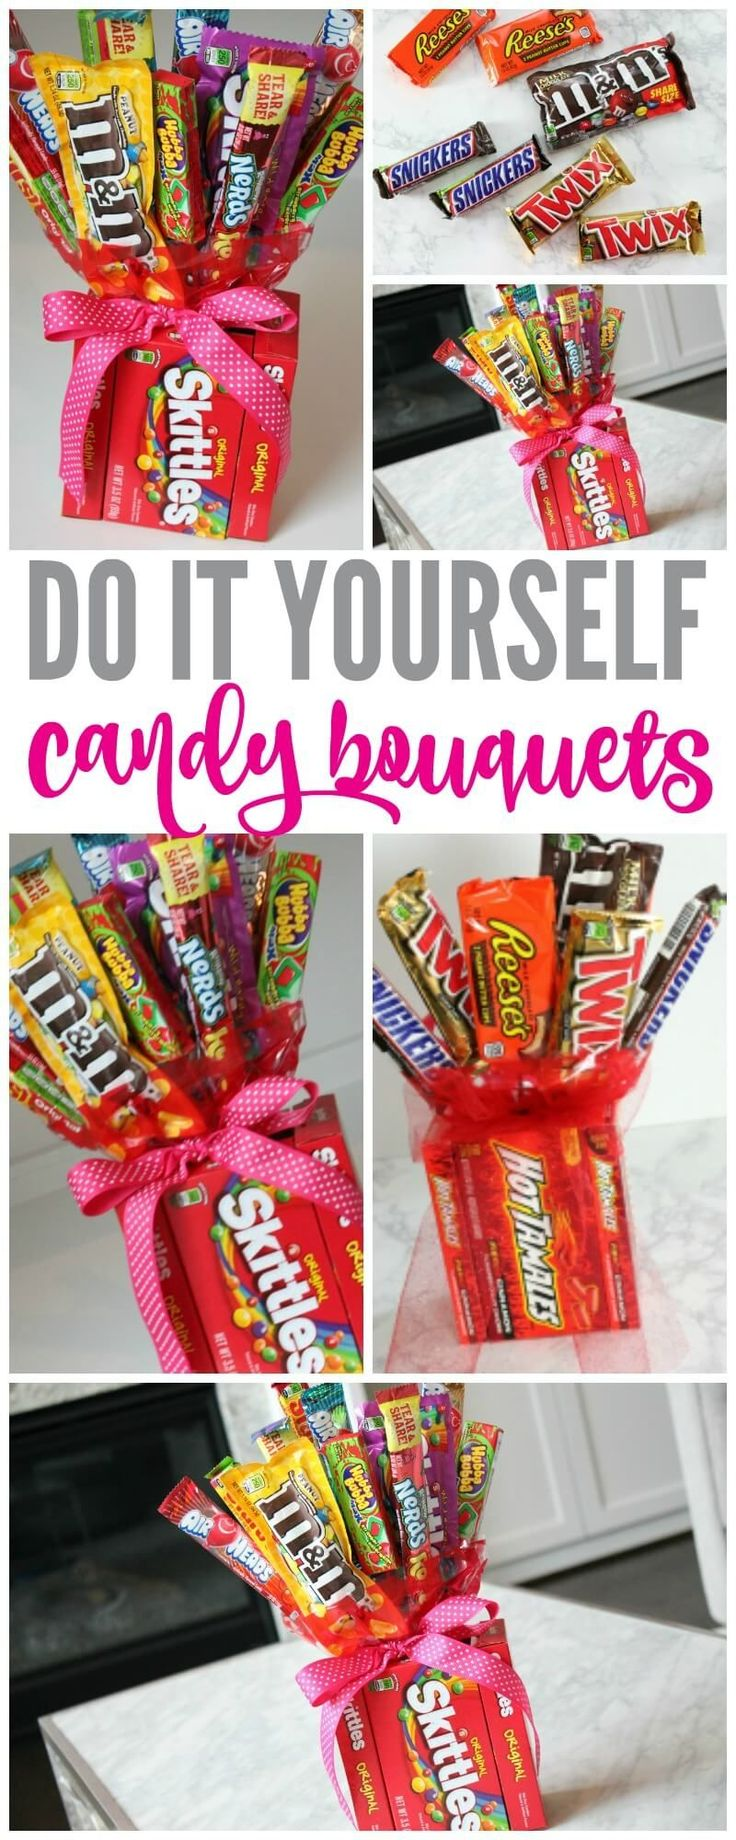 Gift basket ideas 20 pinterest make your own candy bouquets for valentines day fathers day mothers day birthday negle Choice Image